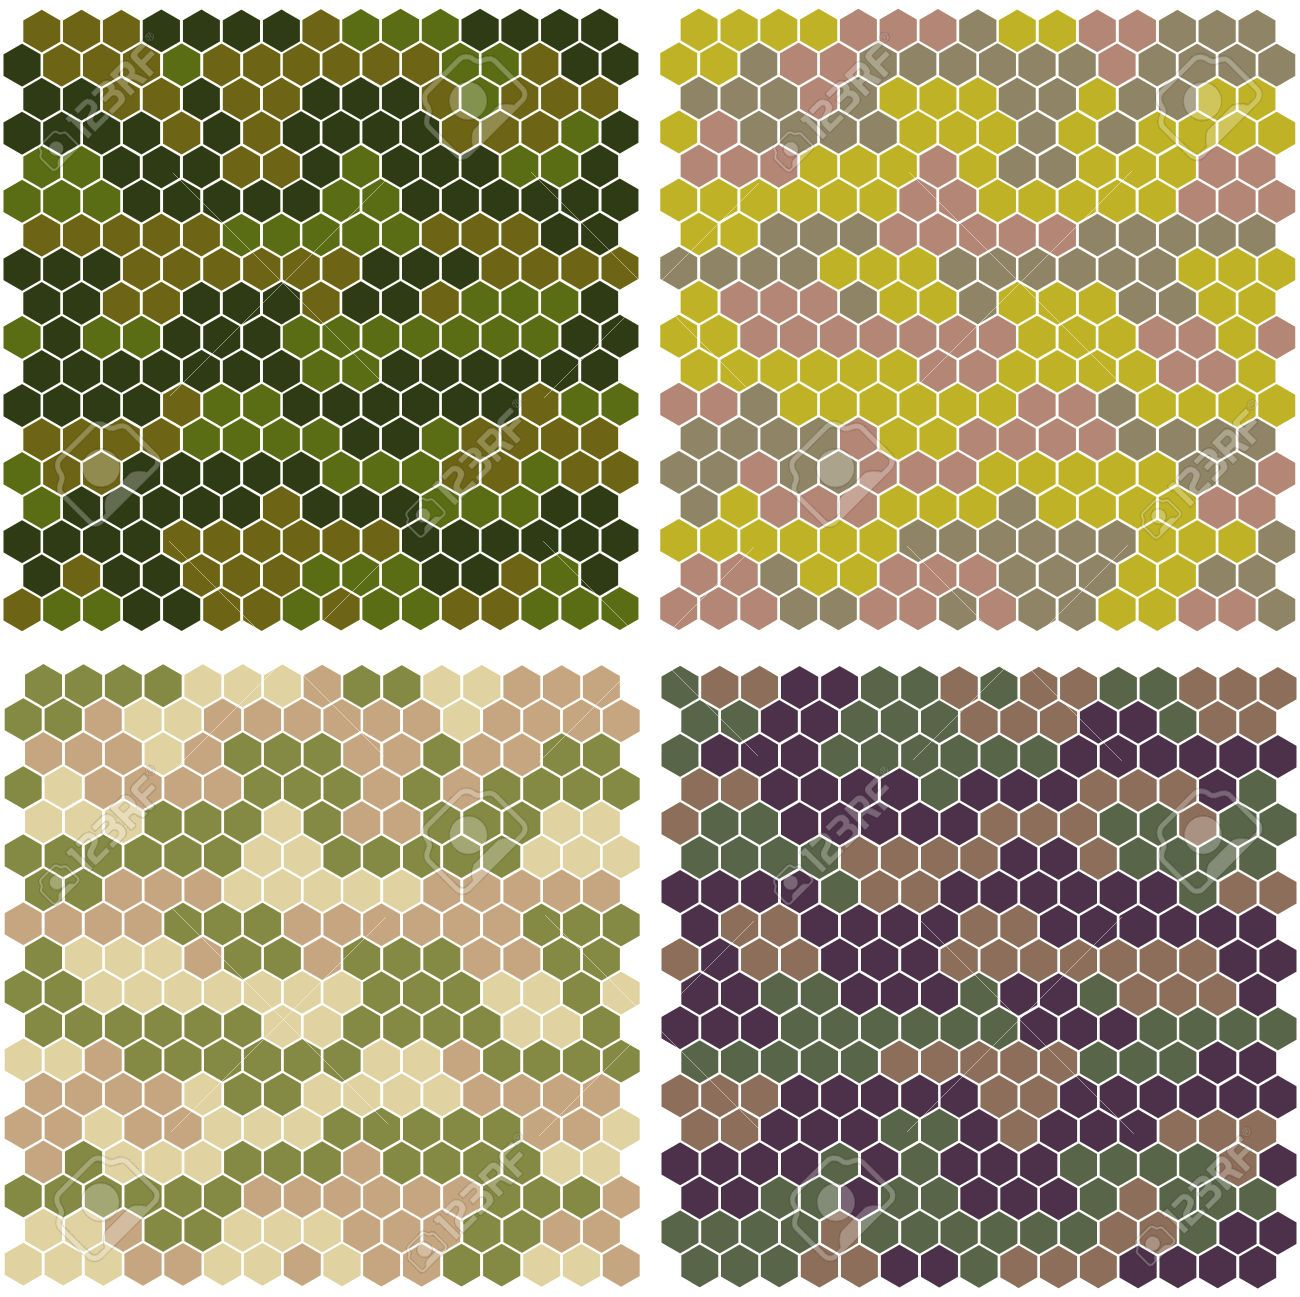 47946596-abstract-camouflage-from-hexagons-Stock-Vector.jpg (1300×1297)